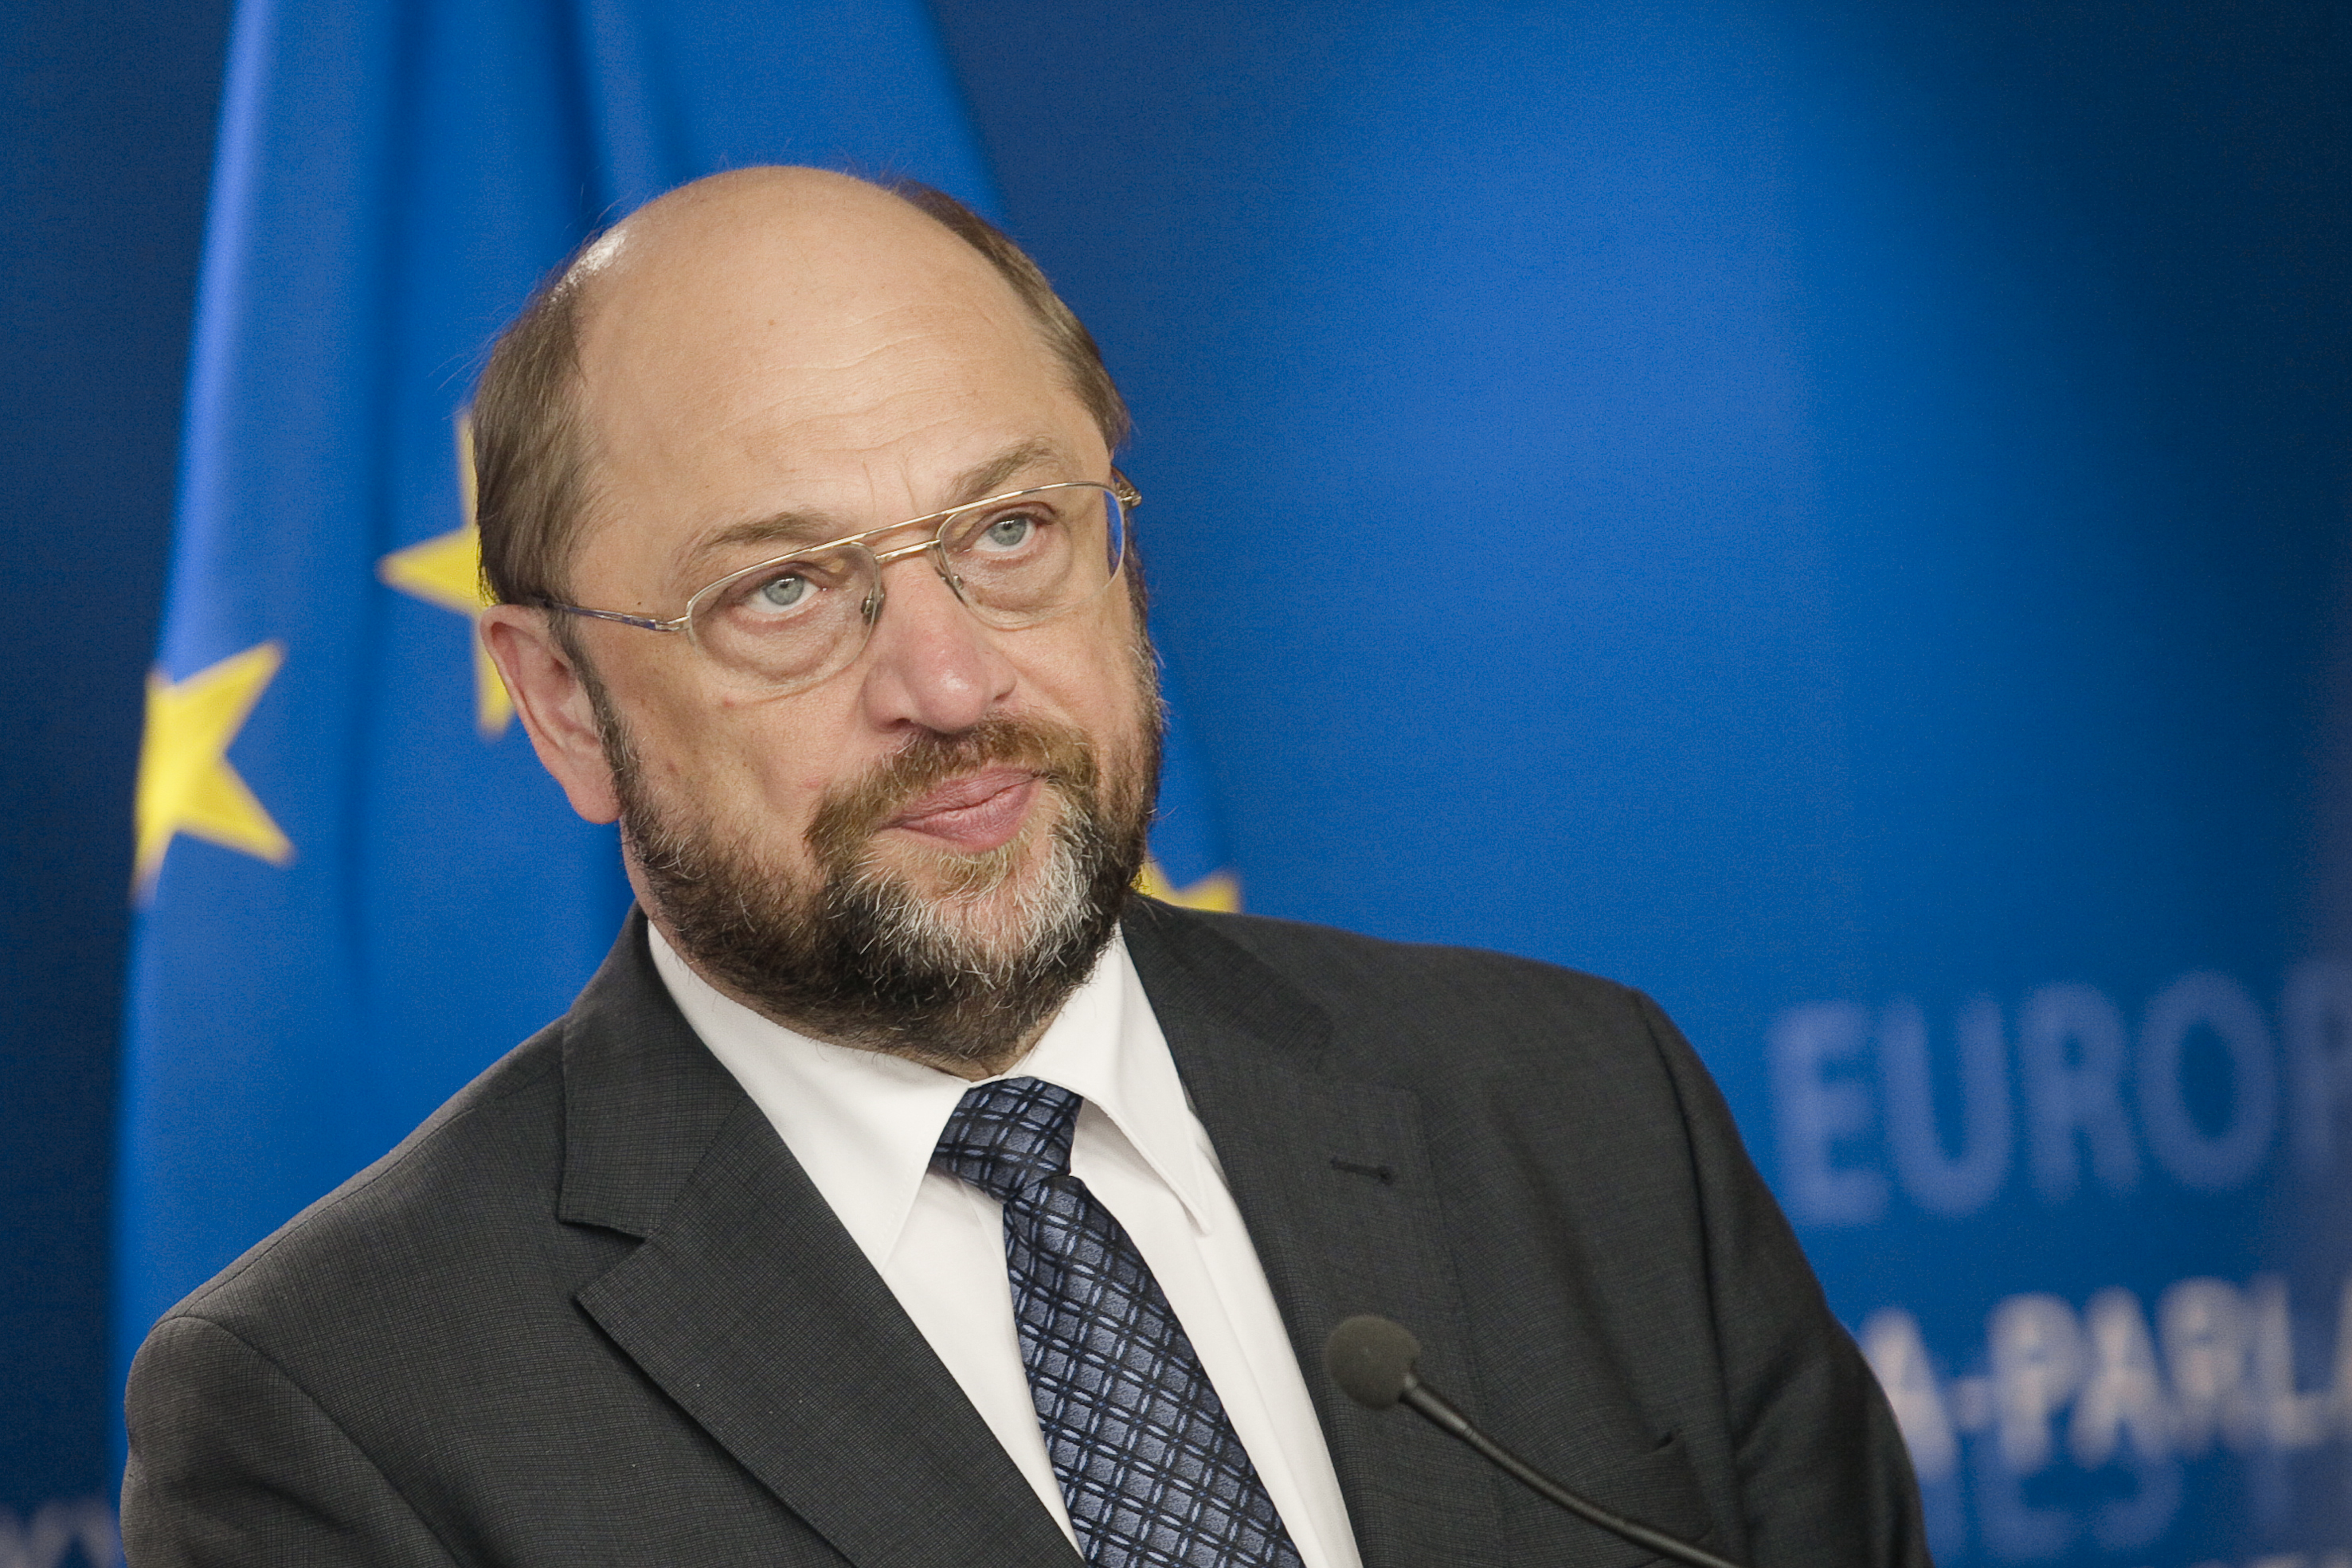 Schulz: The attack against Vucic insulted me